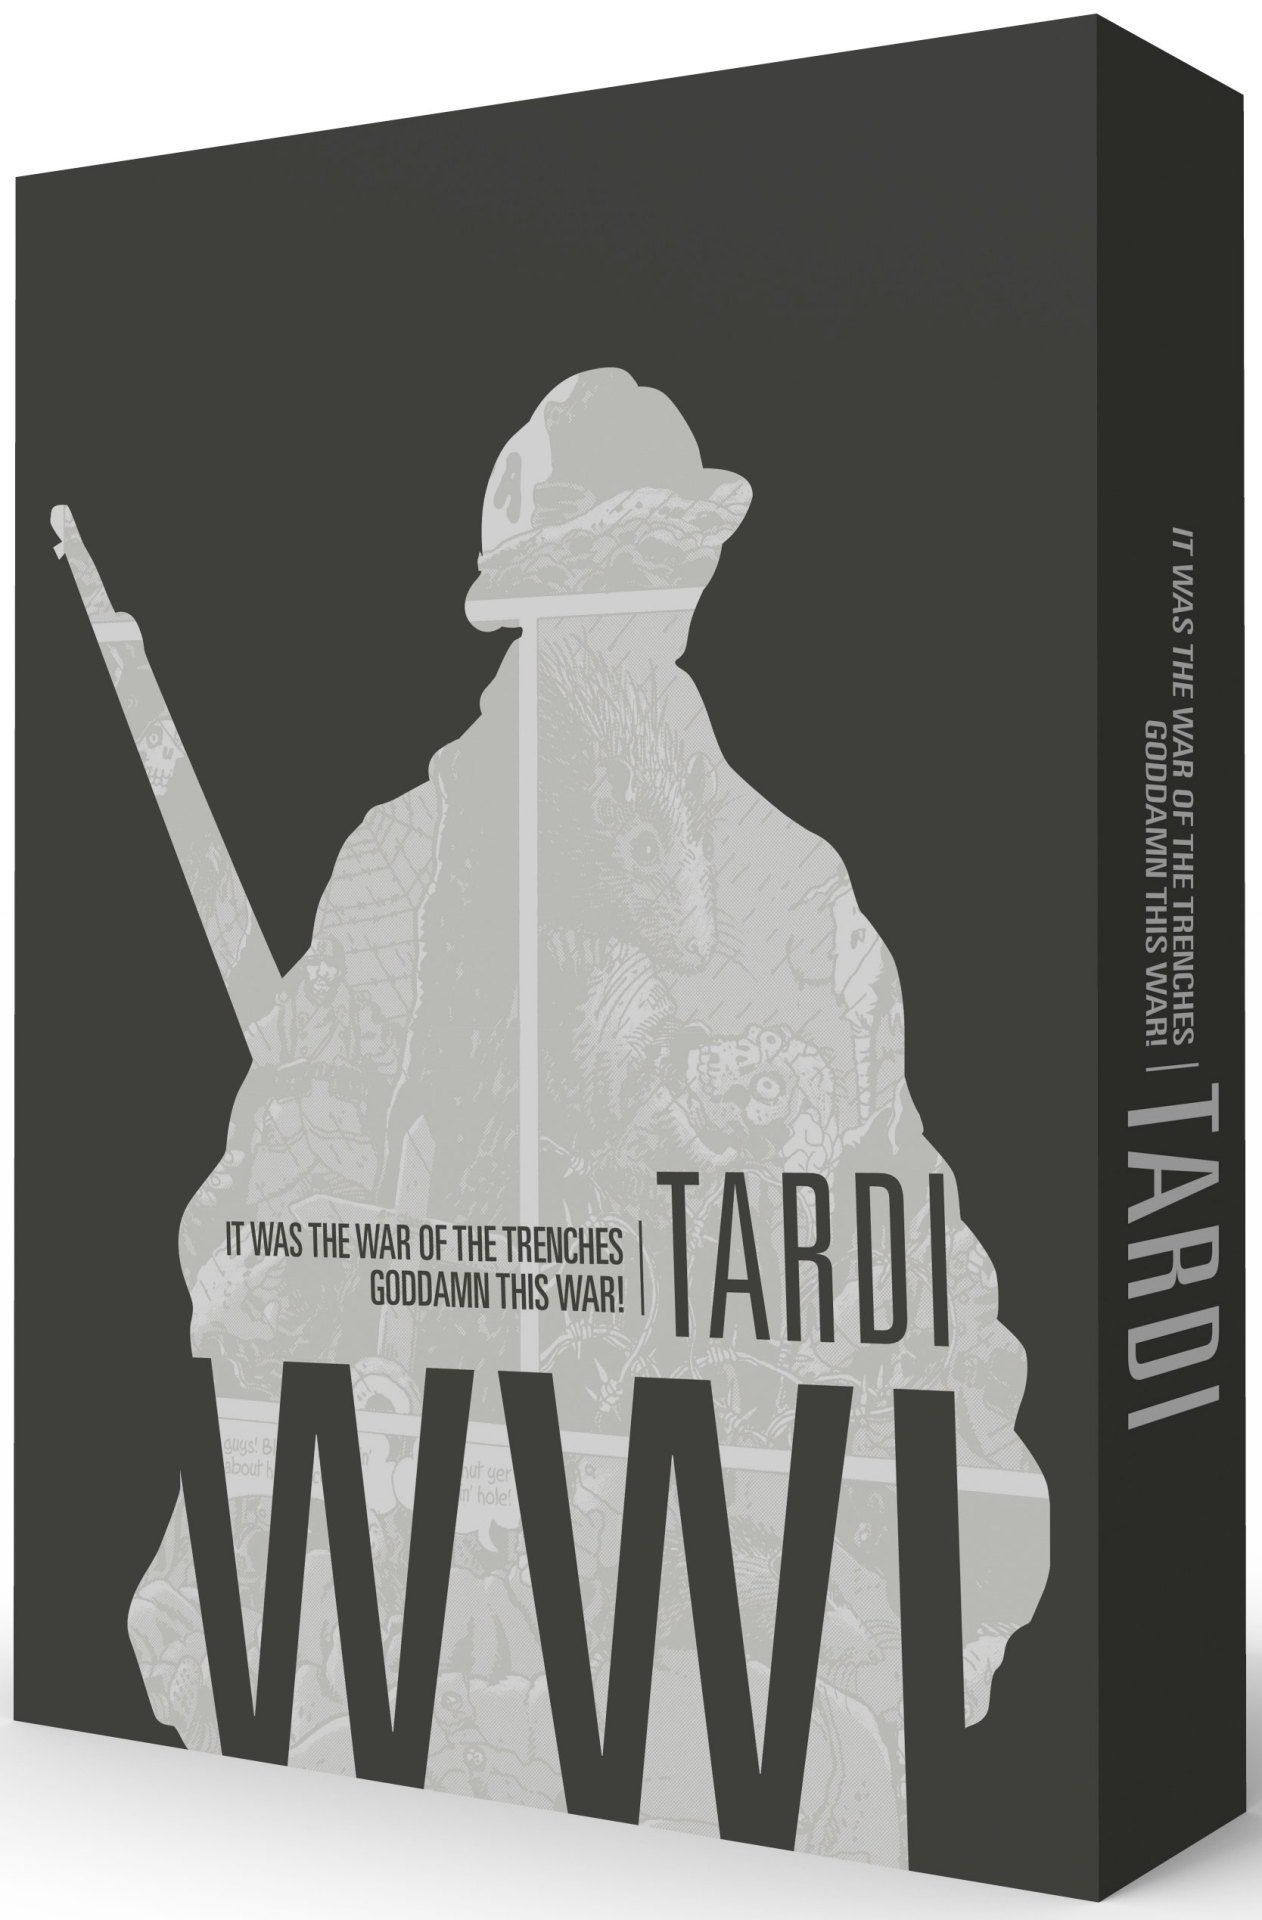 "Just arrived and shipping now from our mail-order department: Tardi's WWI: It Was the War of the Trenches/Goddamn This War!by Jacques Tardi 260-page black & white with color 8.25"" x 10.75"" hardcover • $39.99ISBN: 978-1-60699-769-7 See Previews / Order Now Jacques Tardi is responsible for the two acknowledged graphic novel masterpieces about World War I: It Was the War of the Trenches and Goddamn This War! To commemorate the 100th anniversary of the start of WWI in 2014, Fantagraphics is proud to release a two-volume boxed set collecting these two perennial classics. The first book, It Was the War of the Trenches, focuses on the day to day of the grunts in the trenches, bringing that existence alive as no one has before or since with some of his most stunning artwork. His second WWI masterwork, Goddamn This War!, is told with a sustained sense of outrage, pitch-black gallows humor, and impeccably scrupulous historical exactitude, in masterful full color."